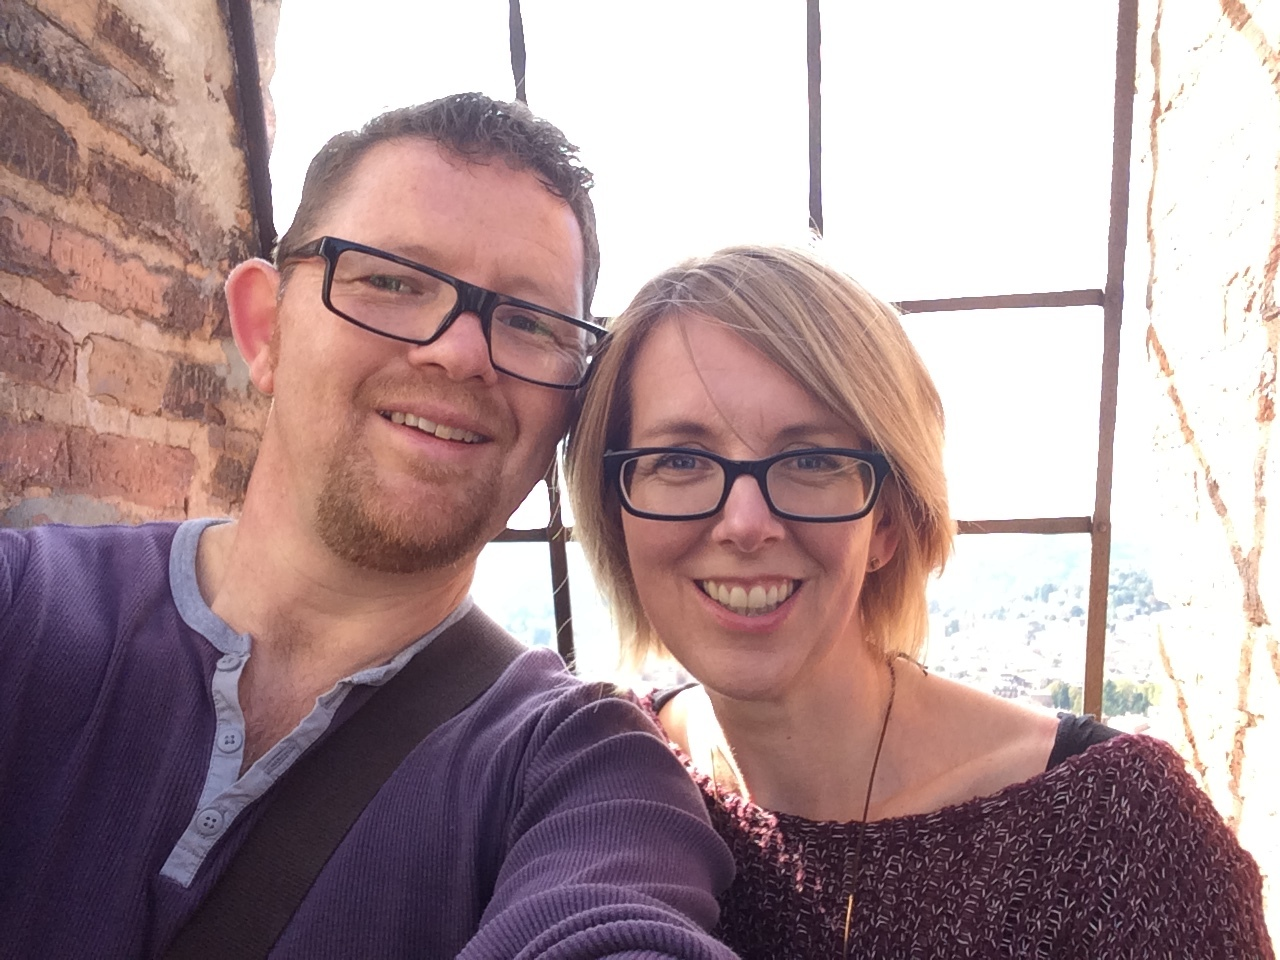 Kevin and Emma Reilly lead the Light House Community and are based in Gdansk, Poland.